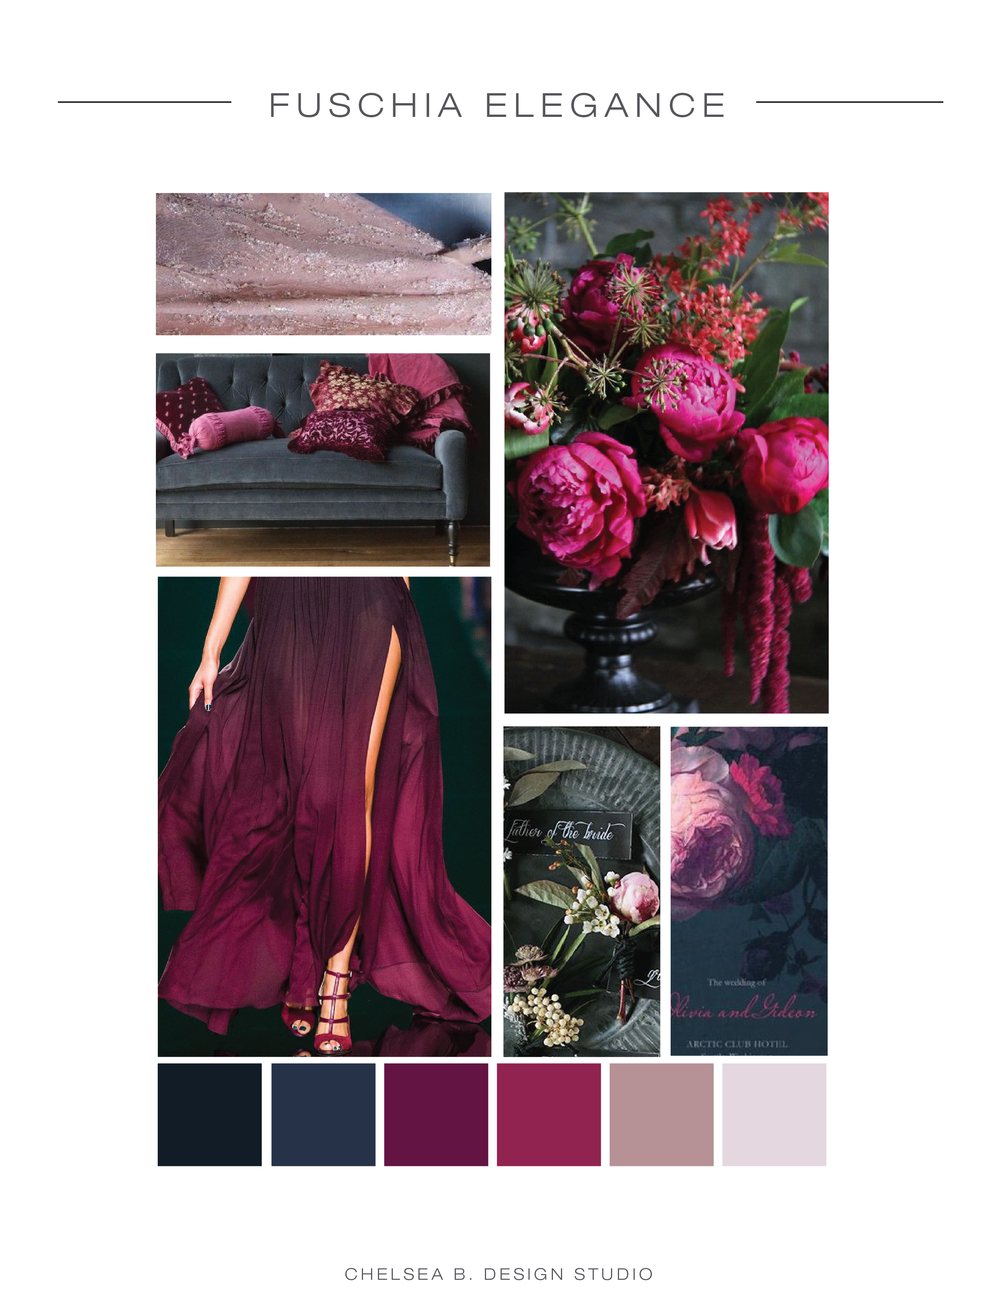 fabric | couch | flowers | dress | boutonniere | invitation